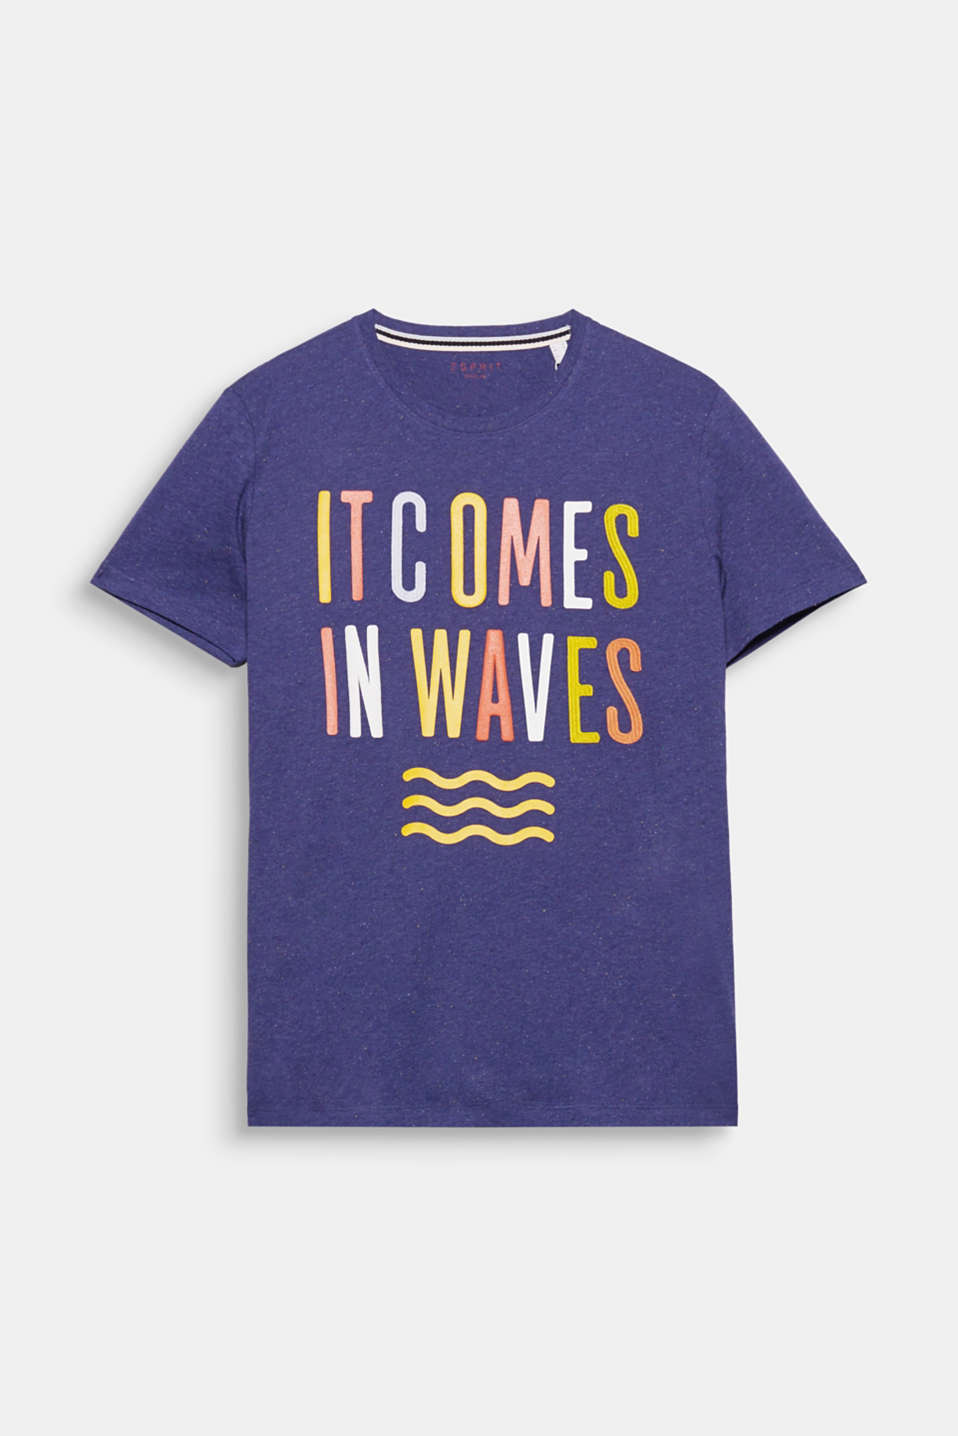 It comes in Waves! La combinación de estampado y bordado le da un toque original a esta camiseta con motas de colores.